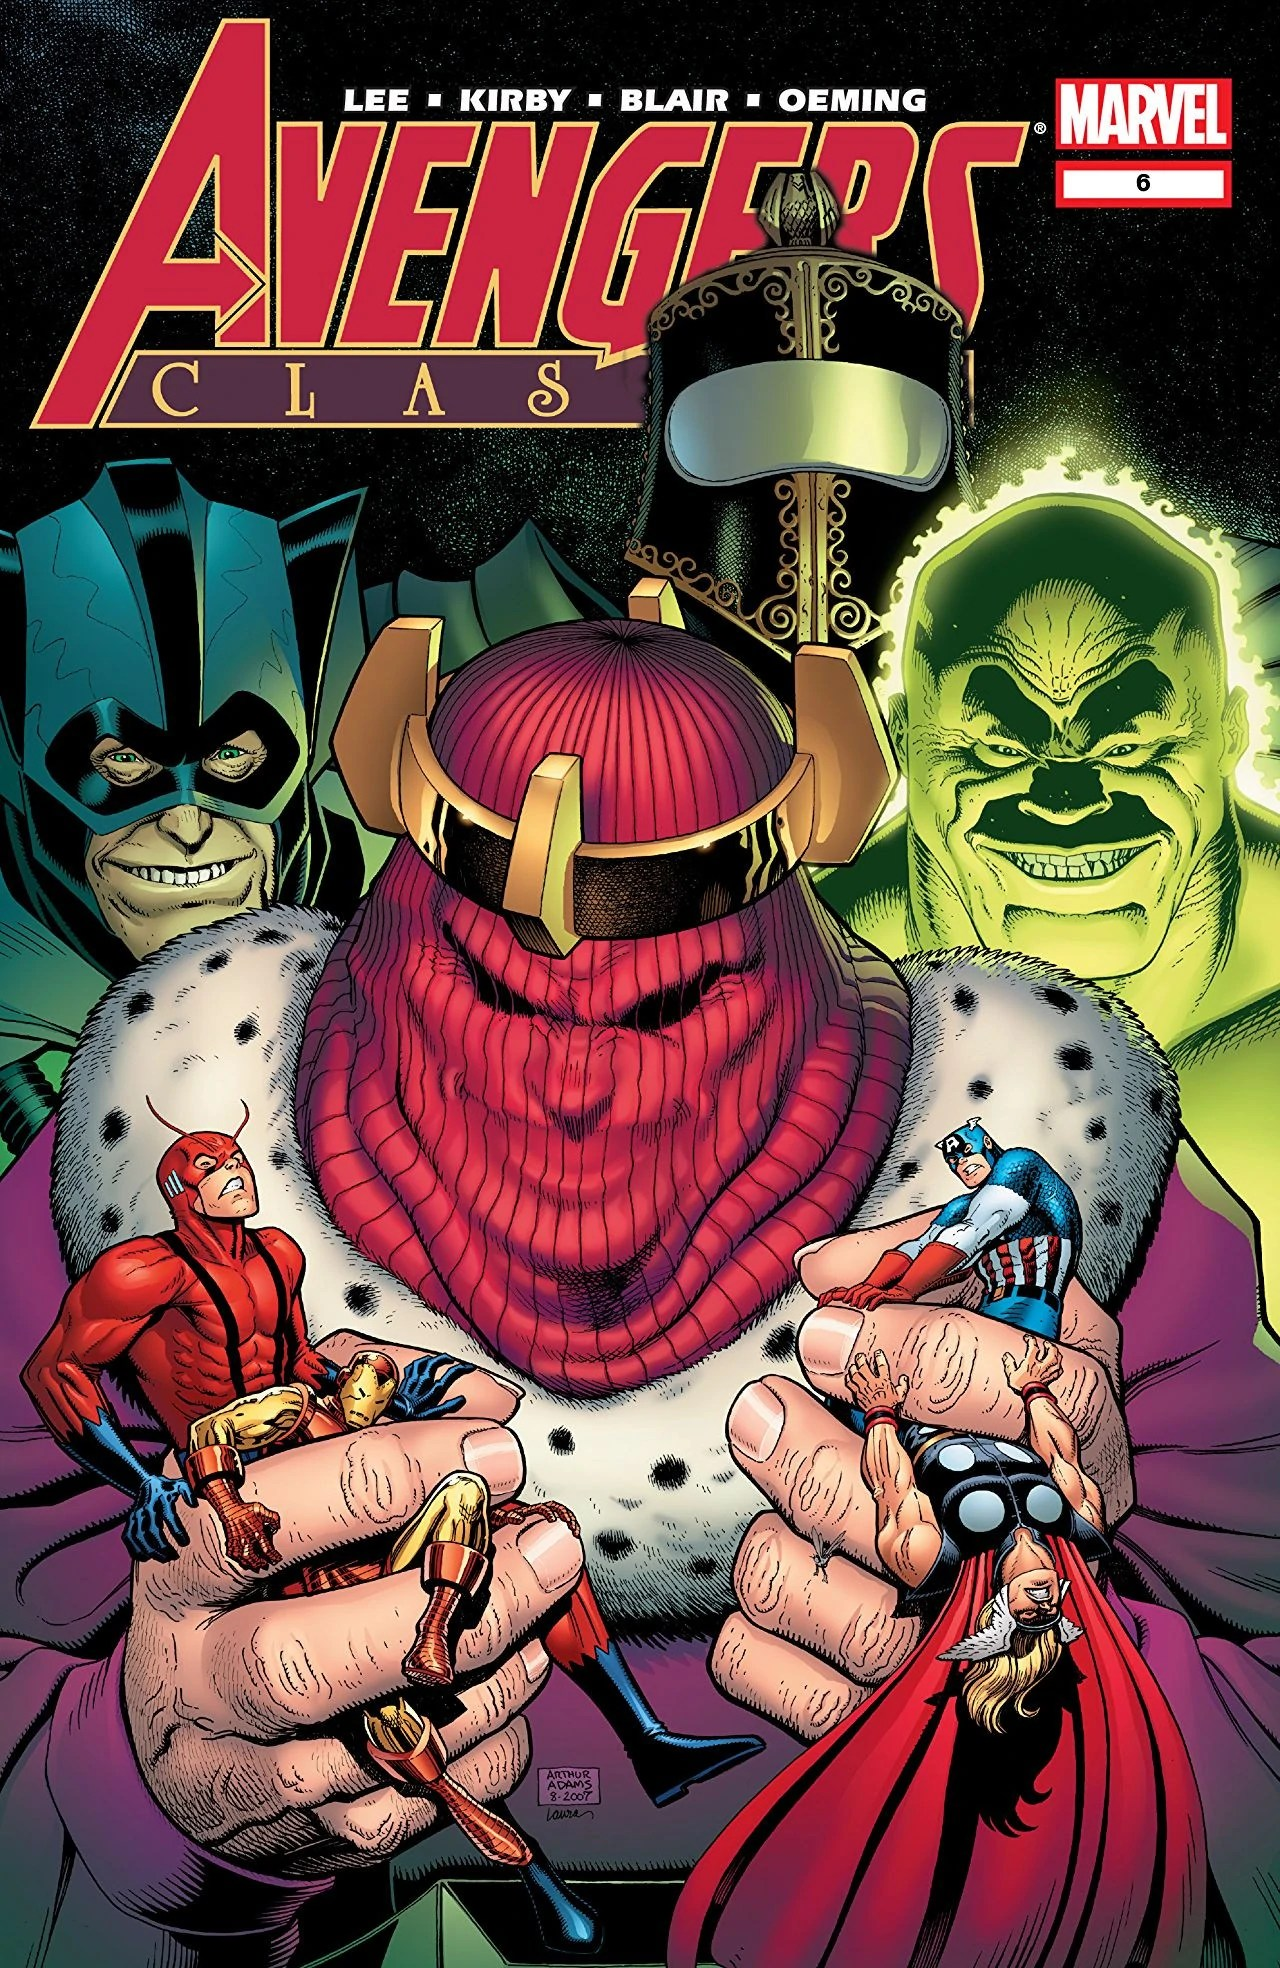 Avengers World Vol 1 6 Marvel Comics Database - Year of Clean Water